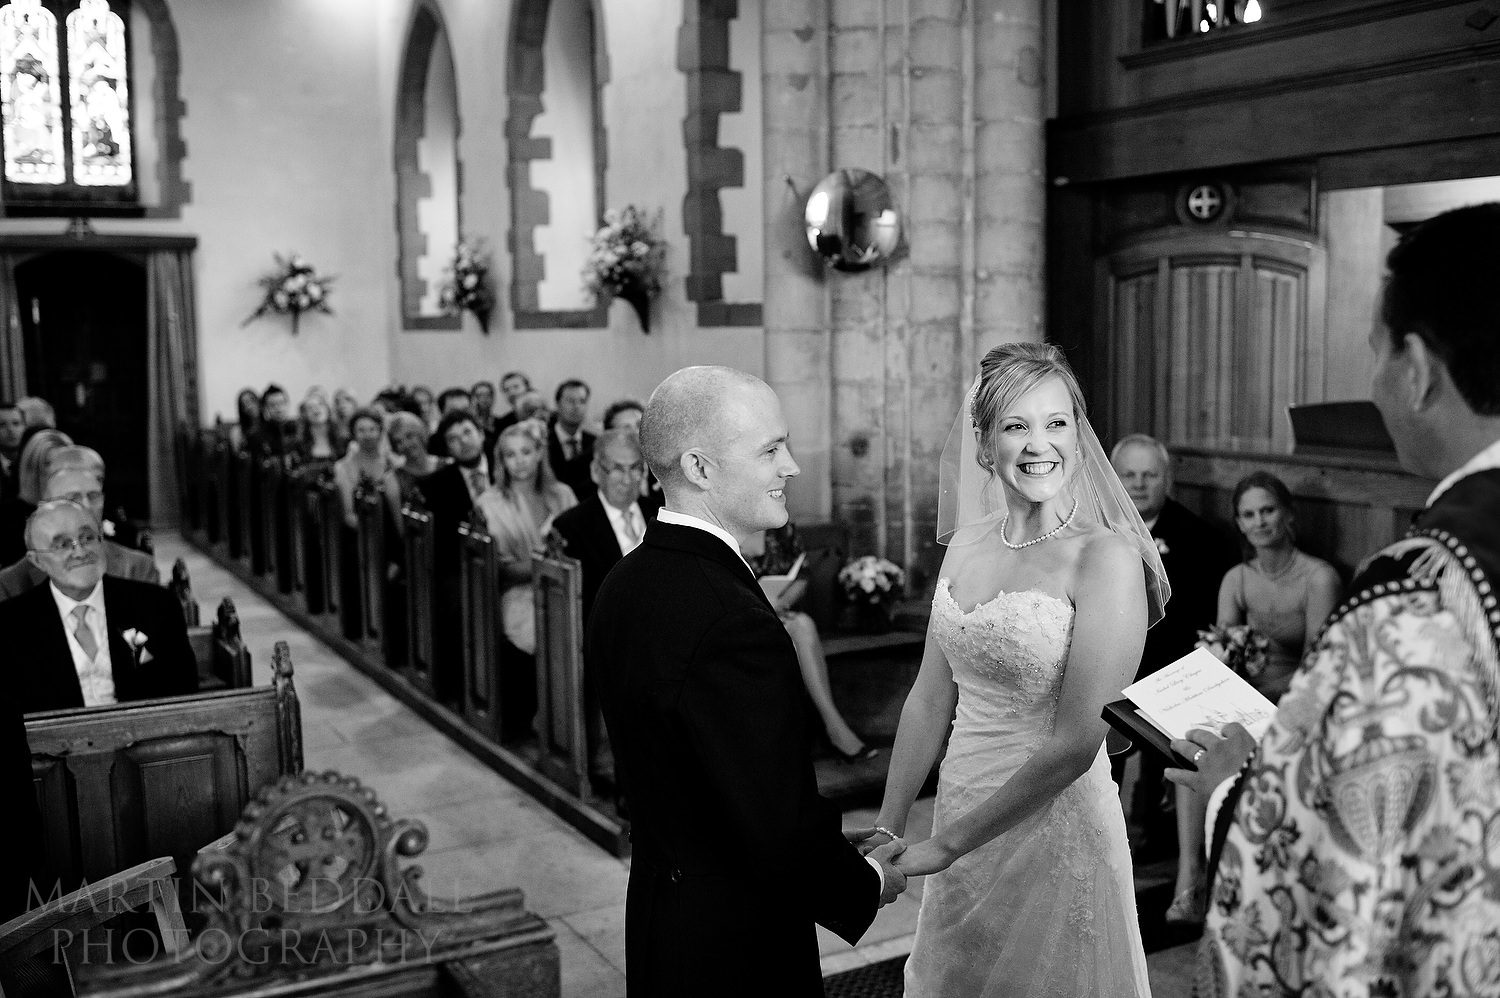 Wedding ceremony at Ditchling church